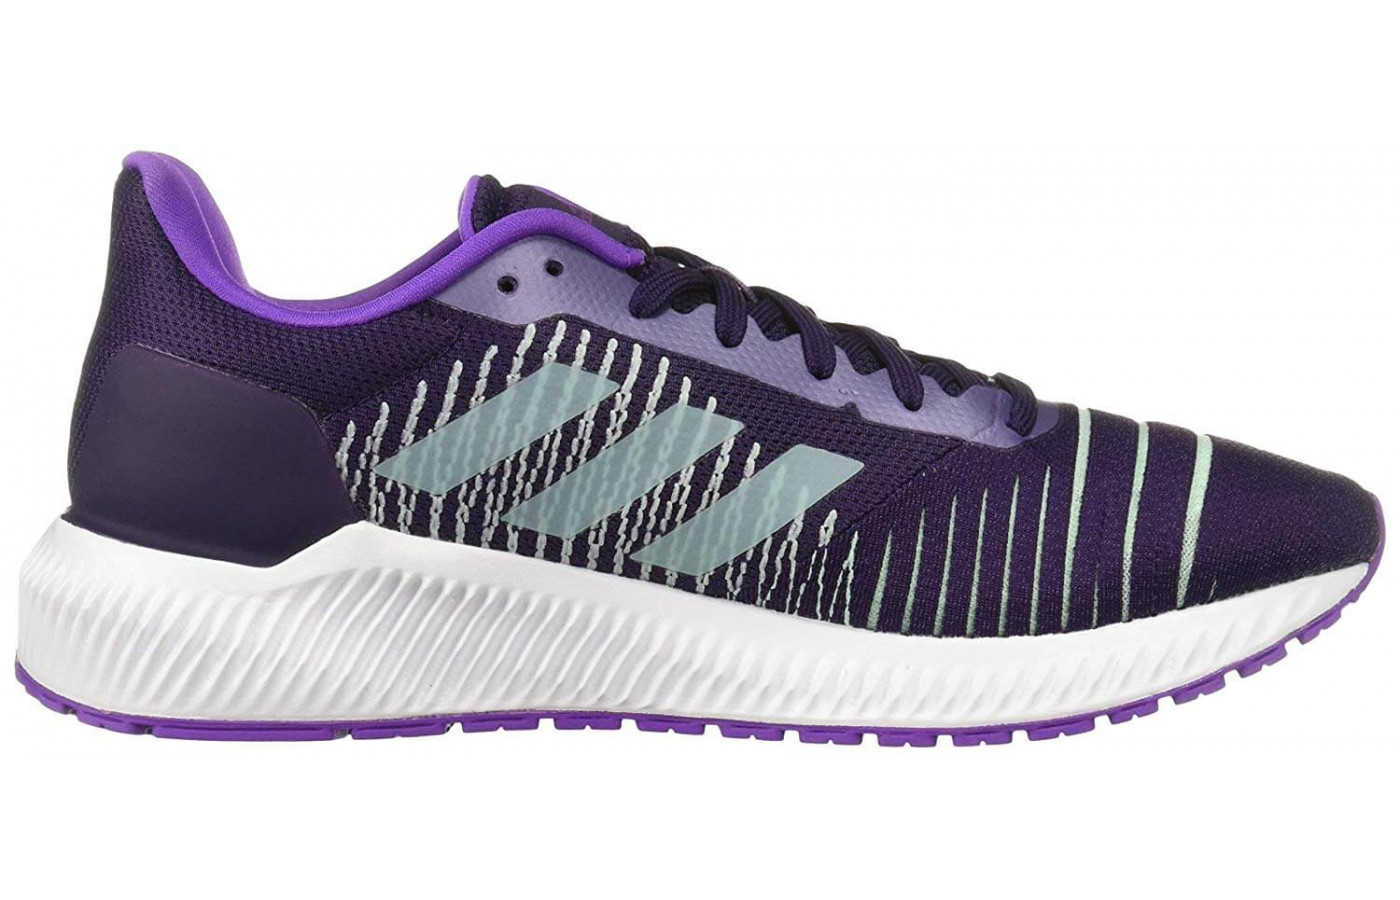 The Bounce midsole gives the Solar Ride a highly responsive wear